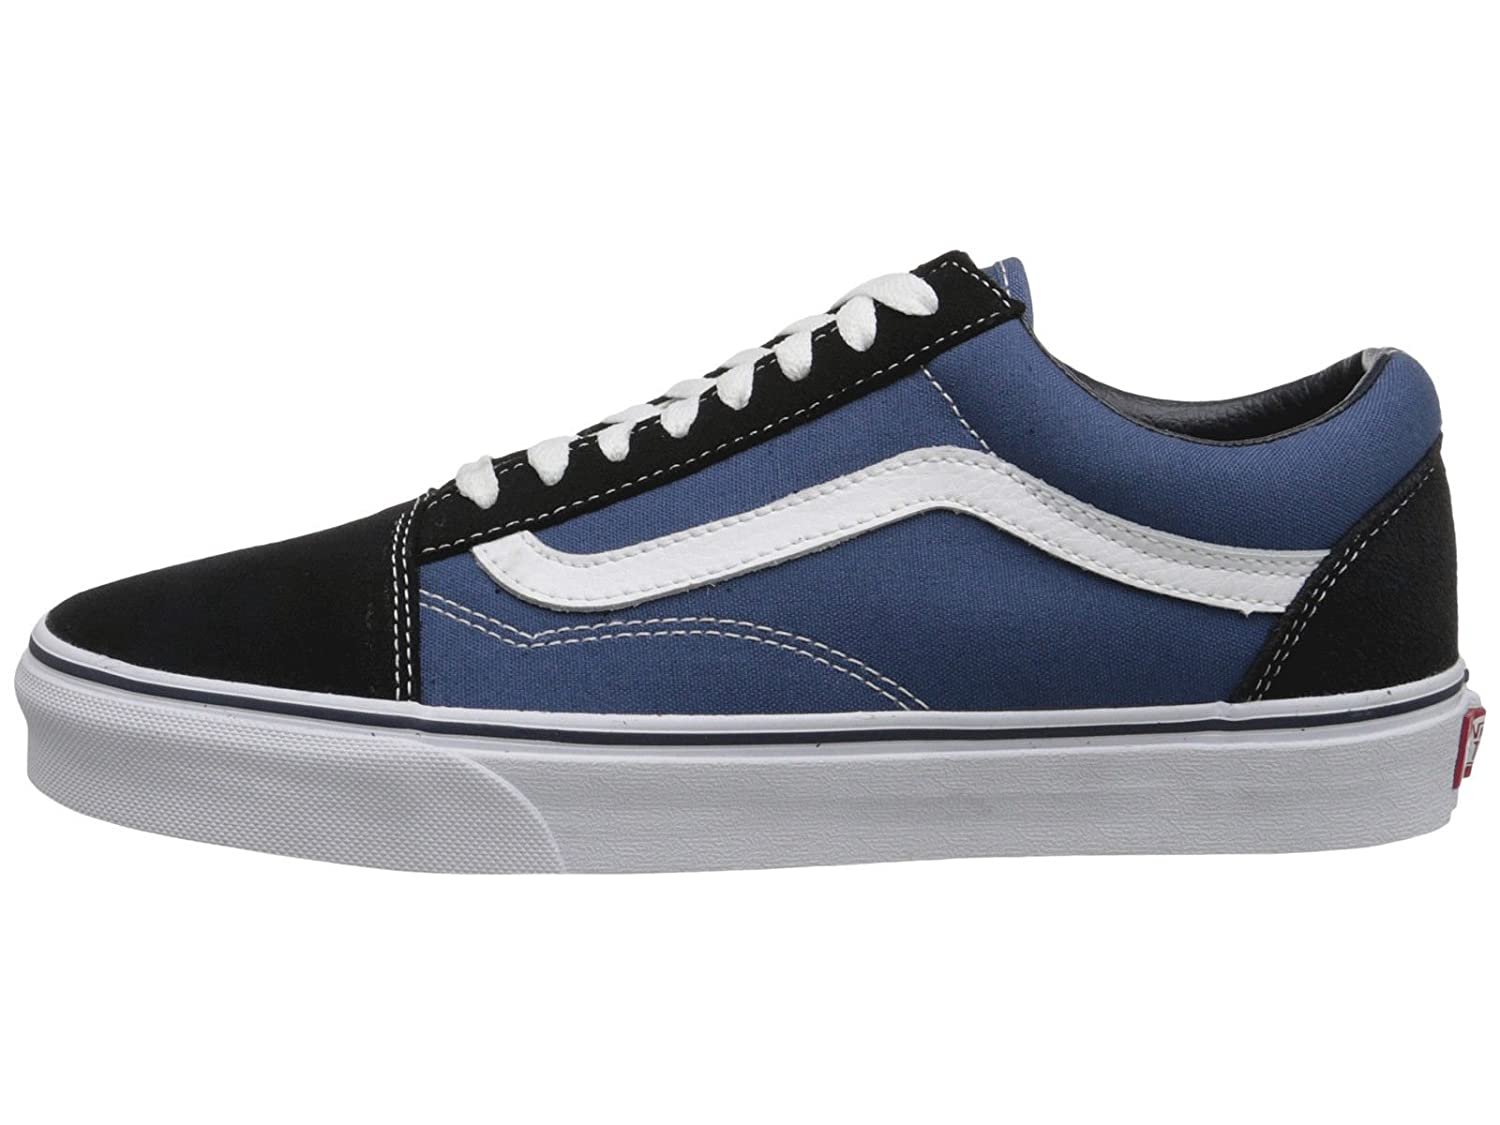 Vans Old Skool, Zapatillas de Estar por Casa Unisex Adulto 39 EU|Azul